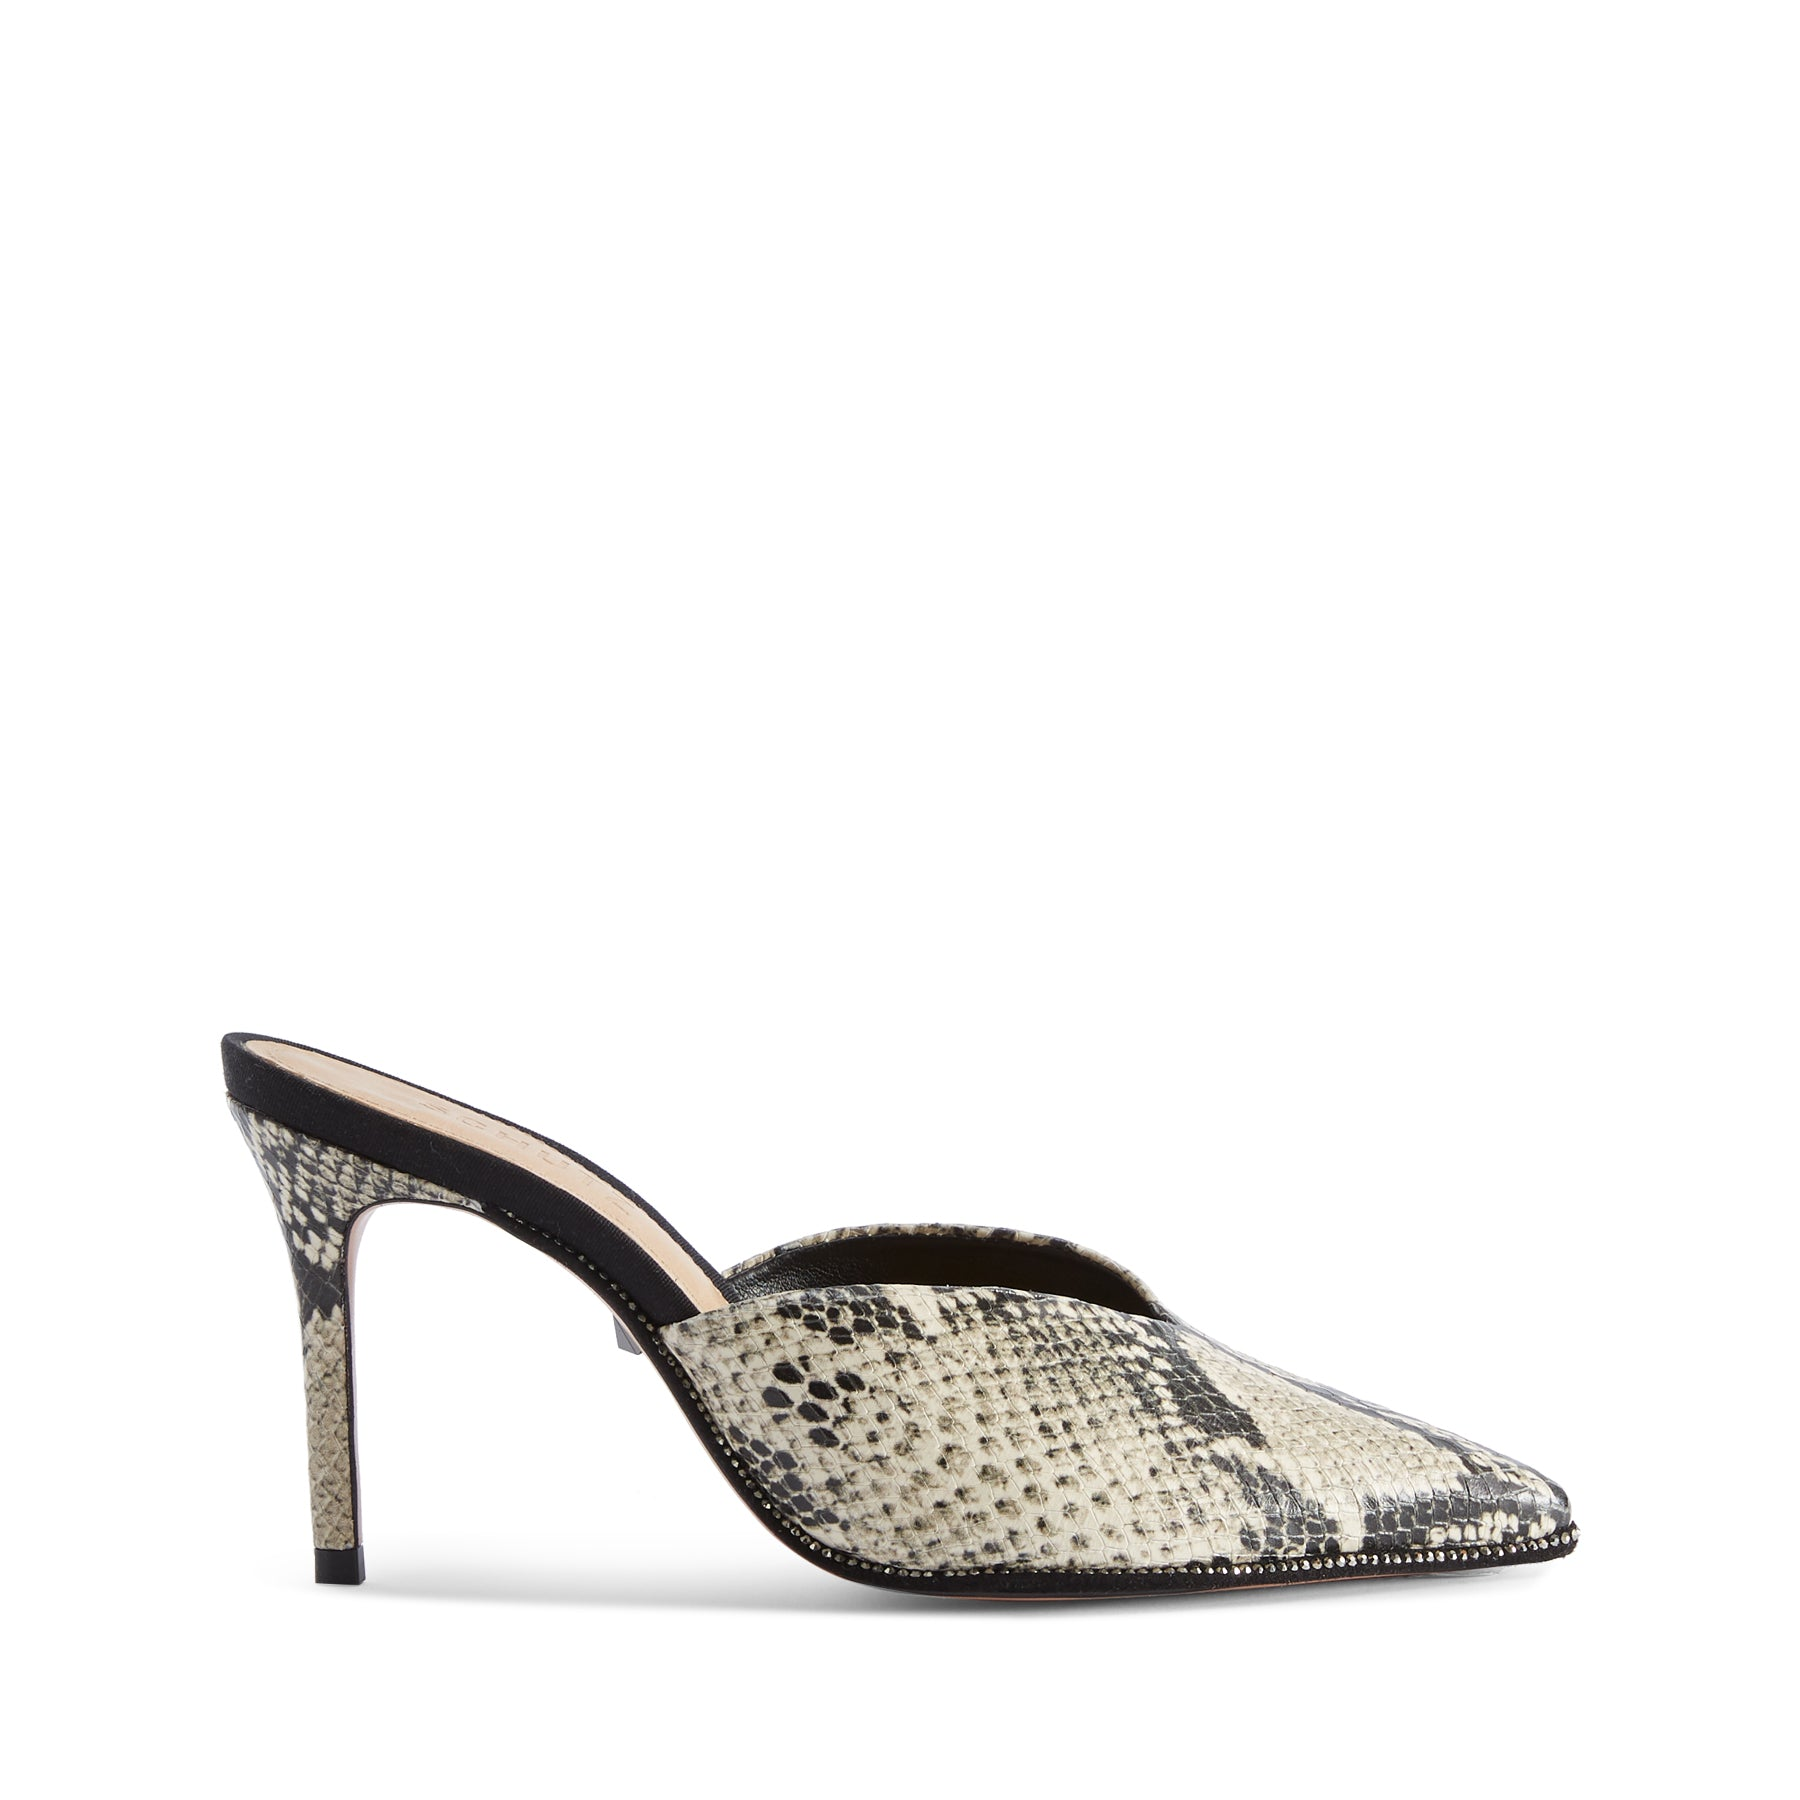 Heliconia Mules Natural Snake Snake Embossed Leather